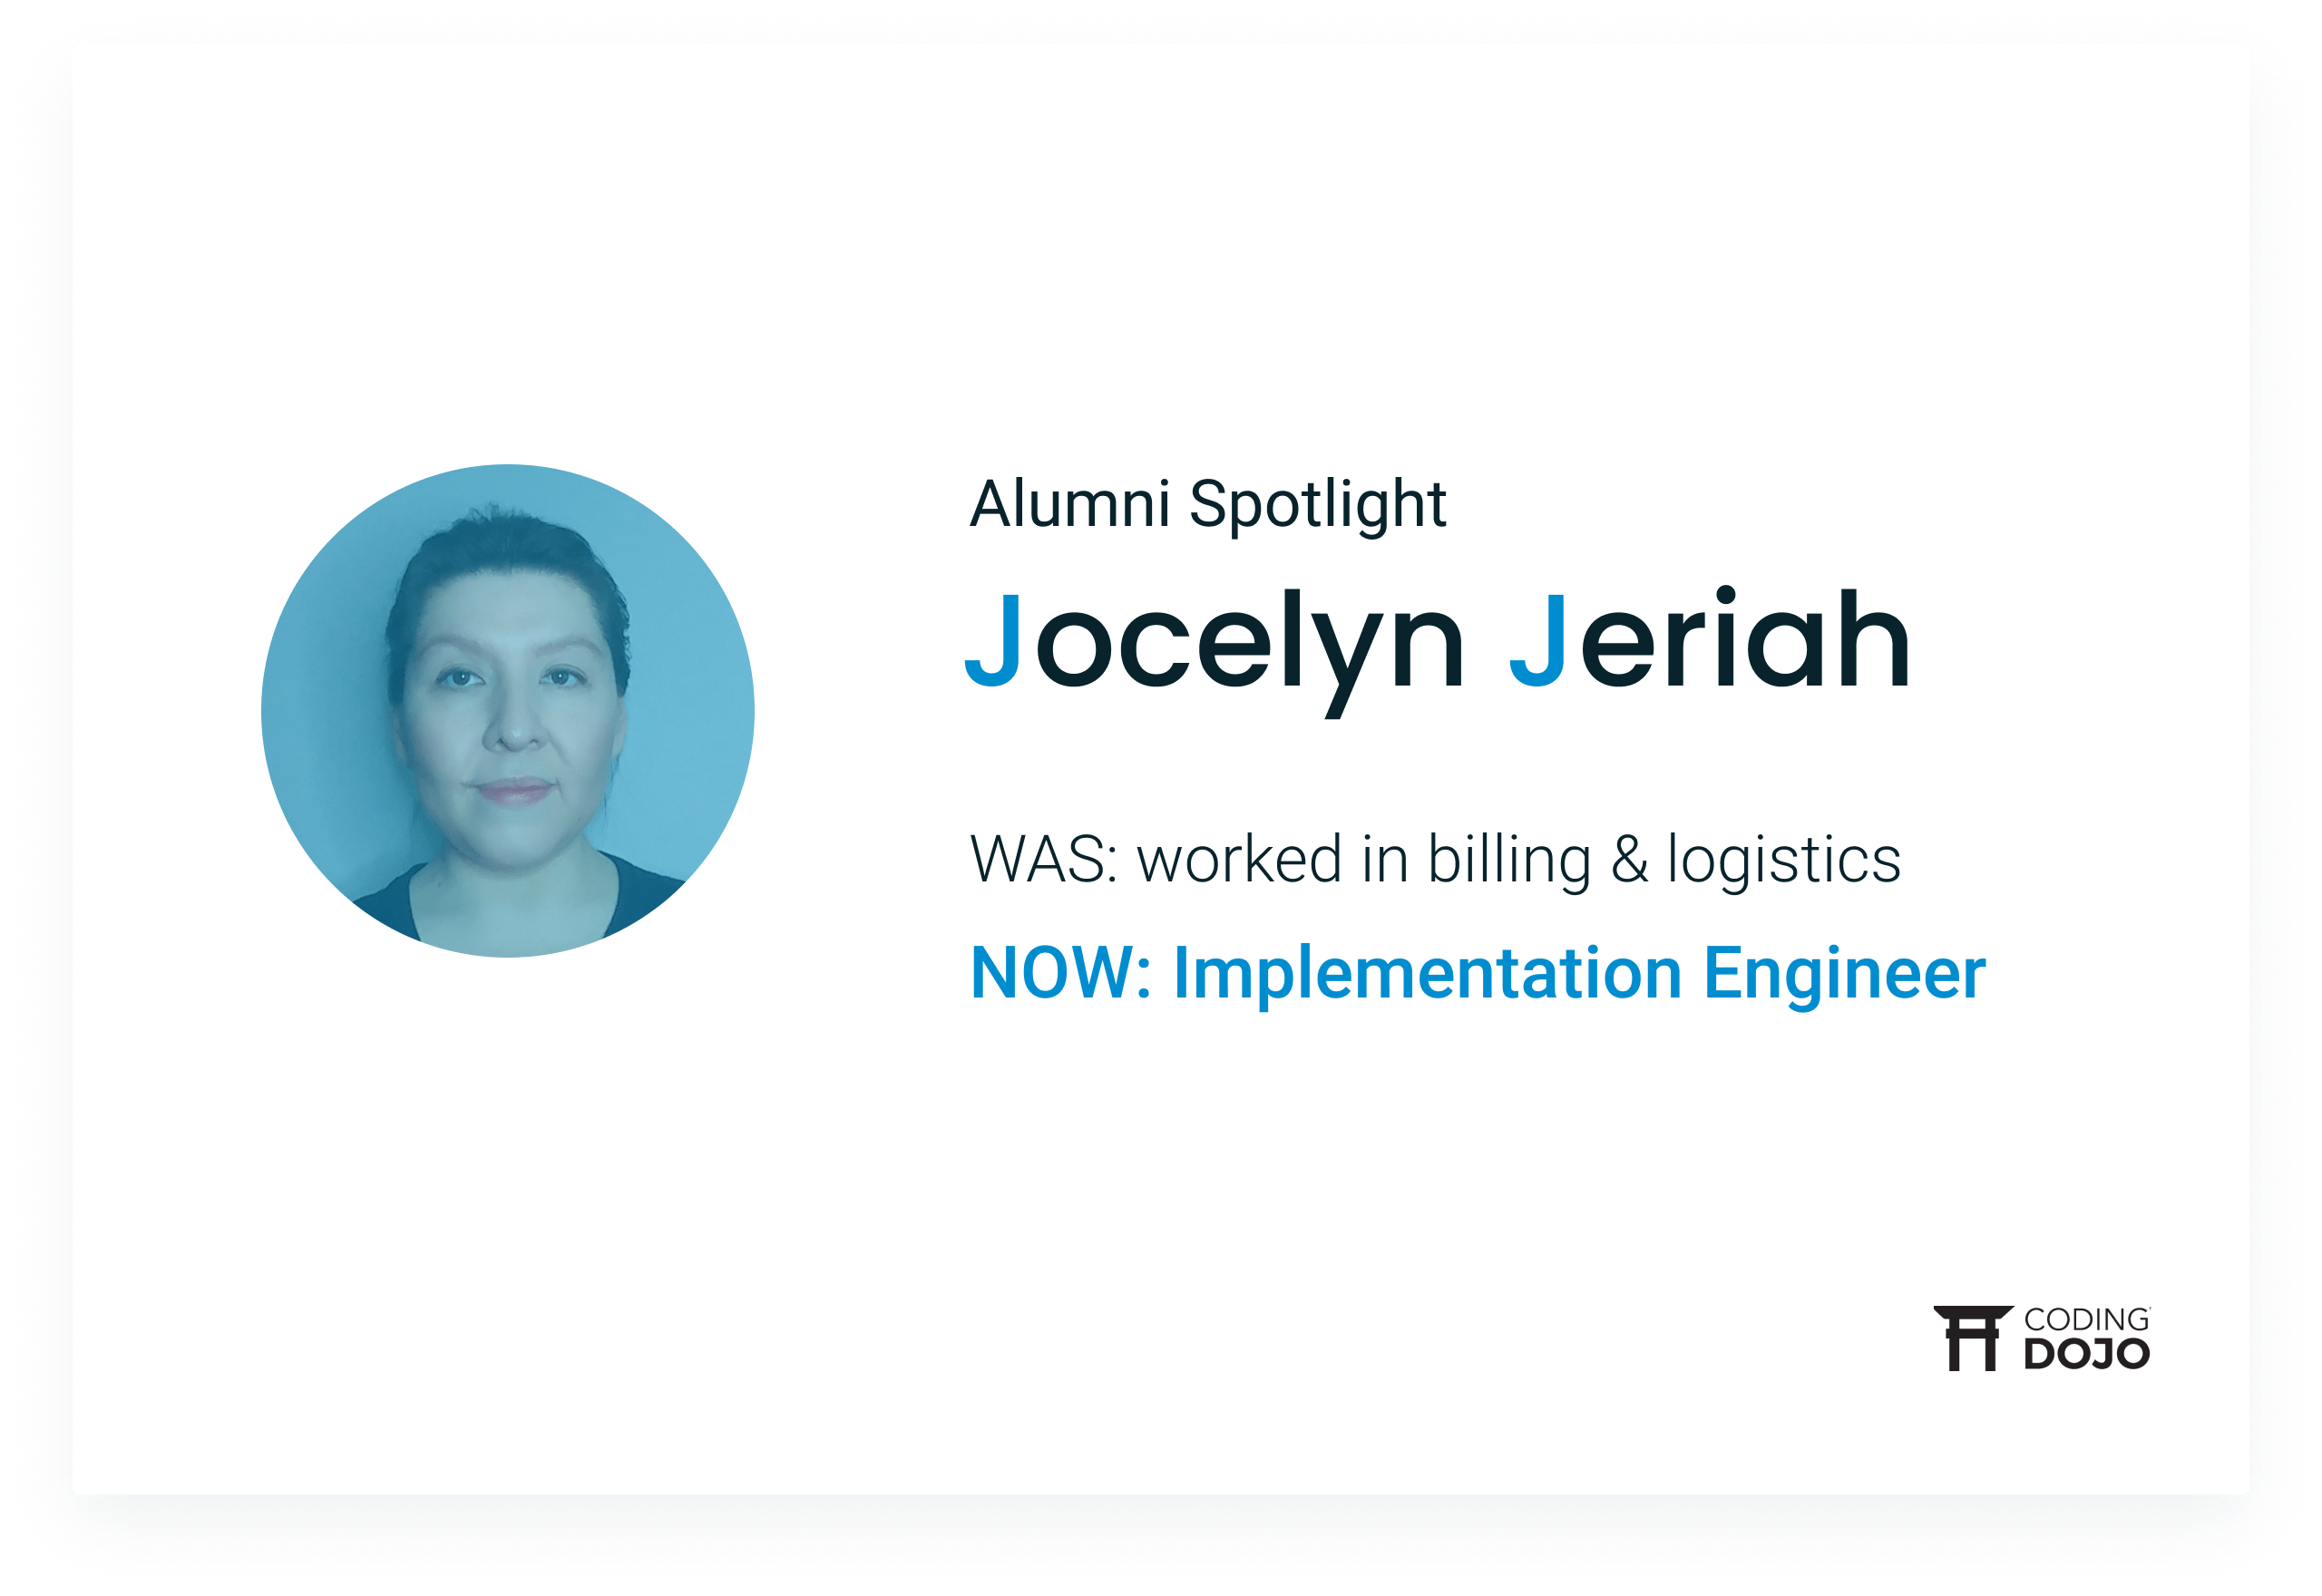 From Coordinating Inventory to Implementing Code | How Online Alumna Jocelyn Jeriah Leveled Up Her Career